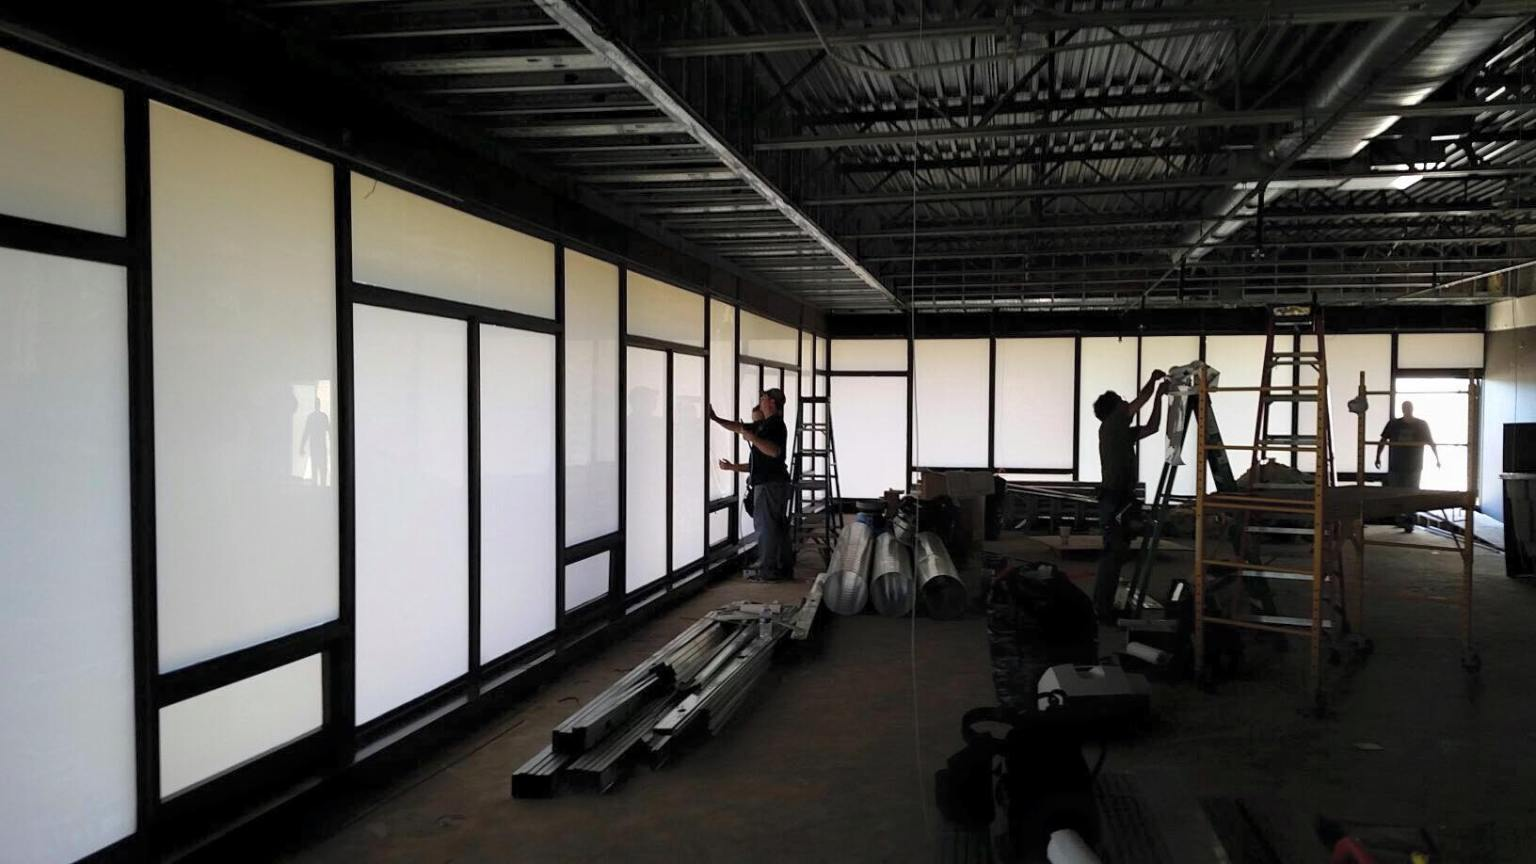 Decorative Window Film Conceals Framework, Walls and Shelving